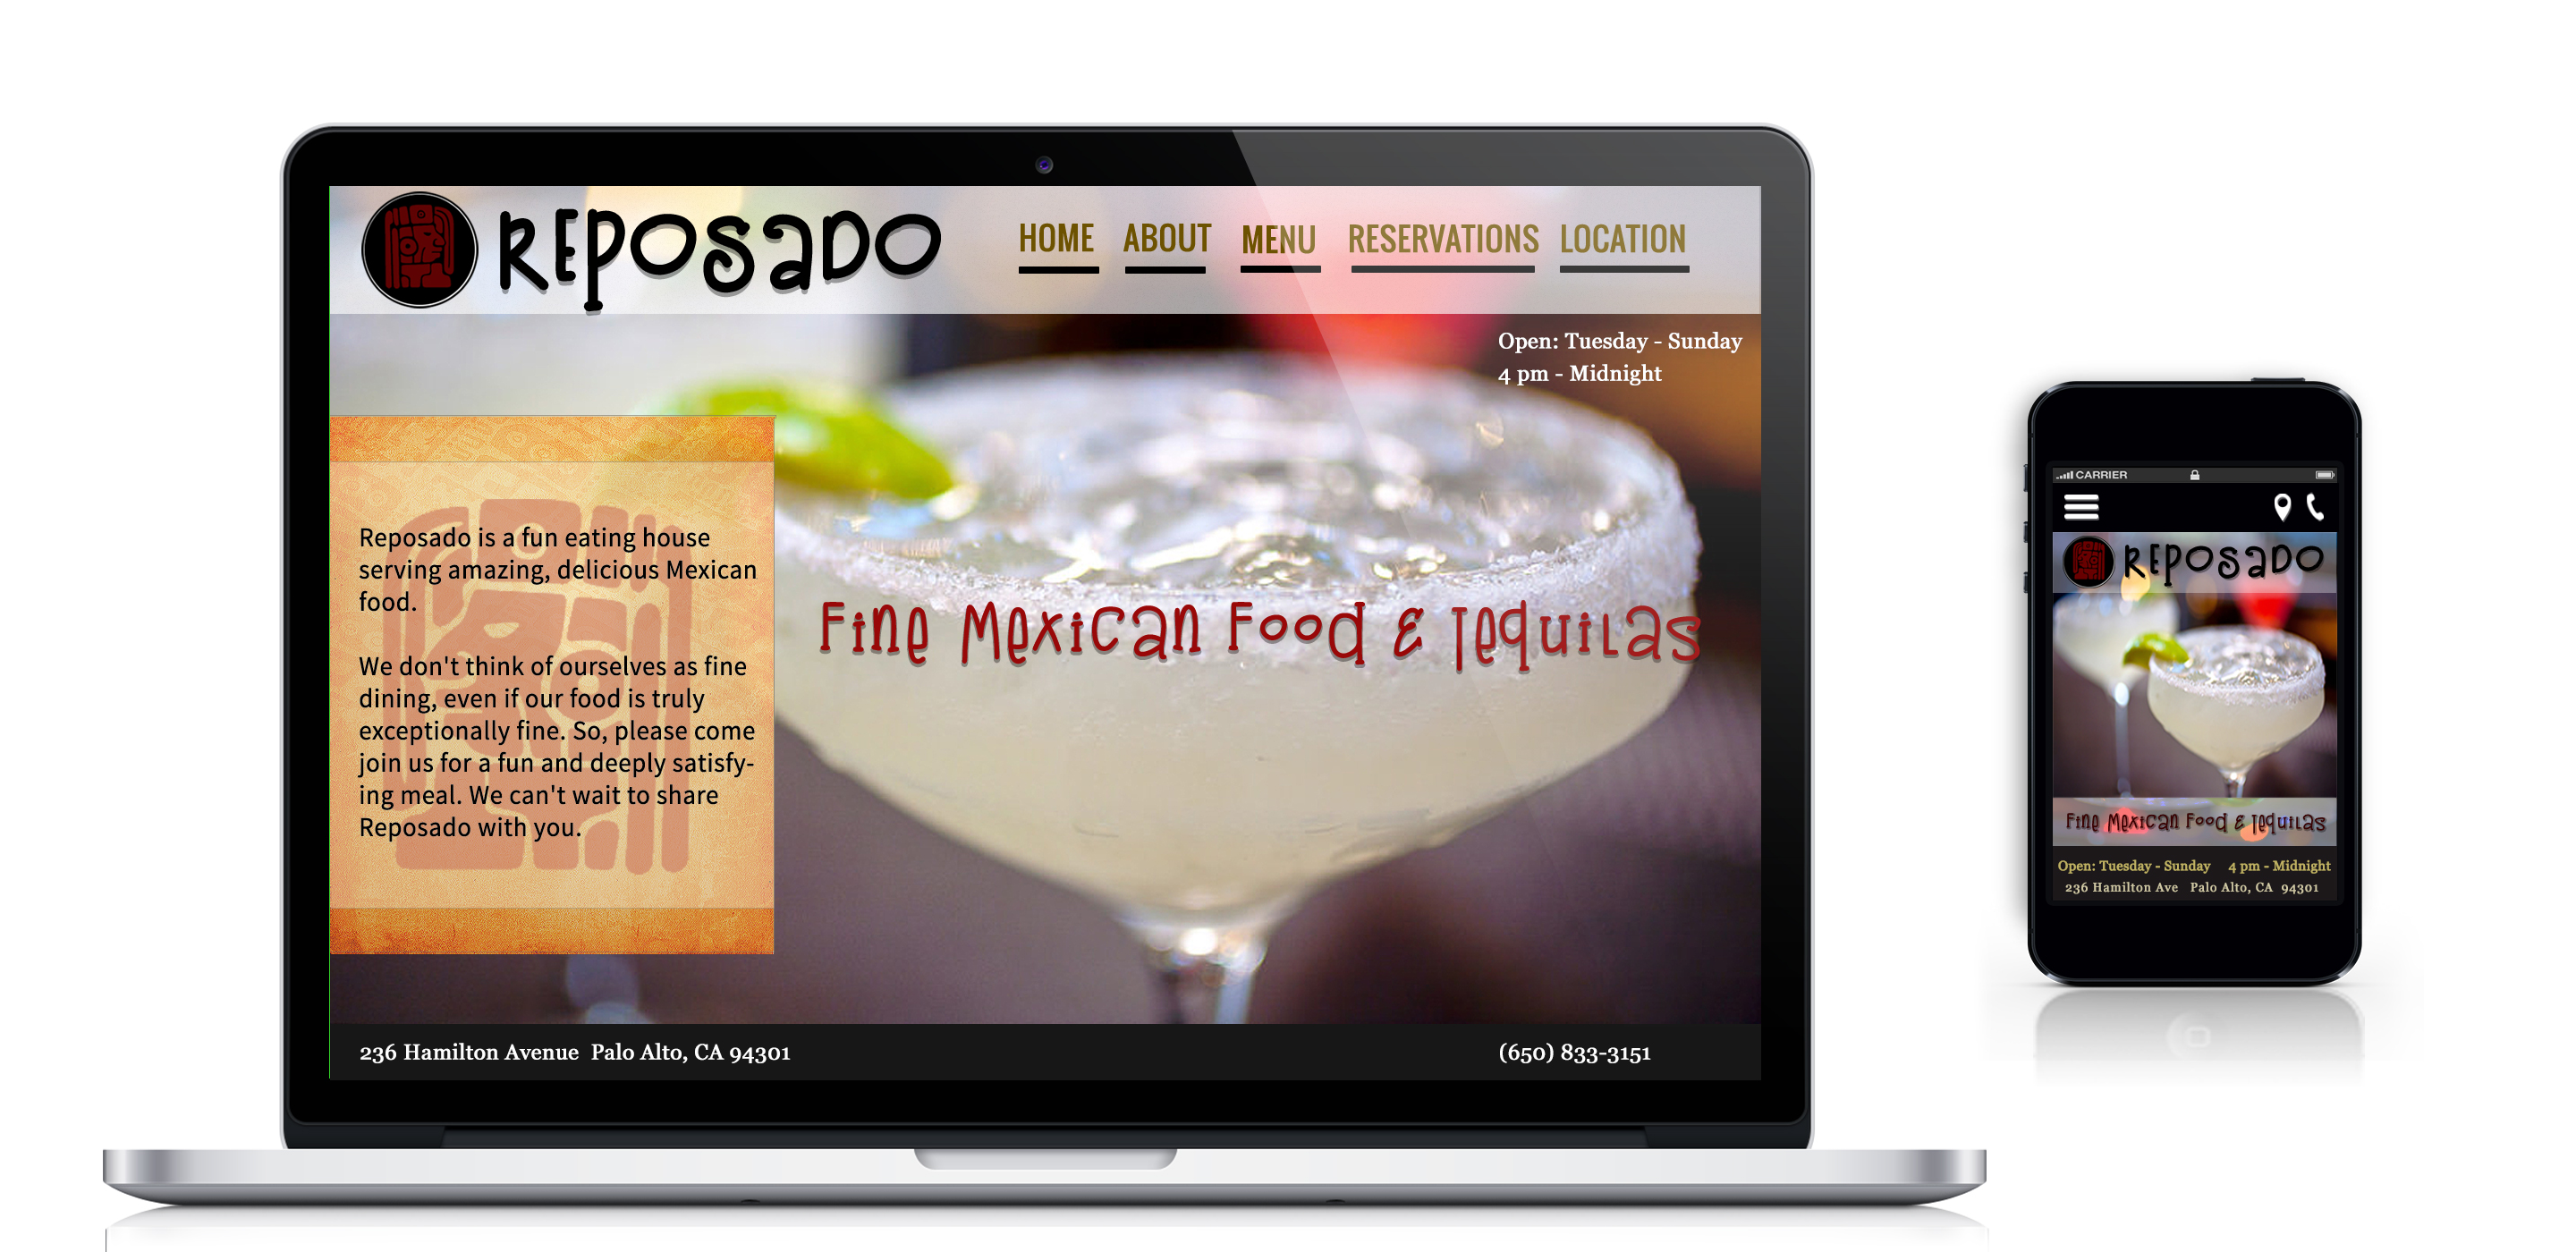 Restaurant Web Design: Mobile to Responsive